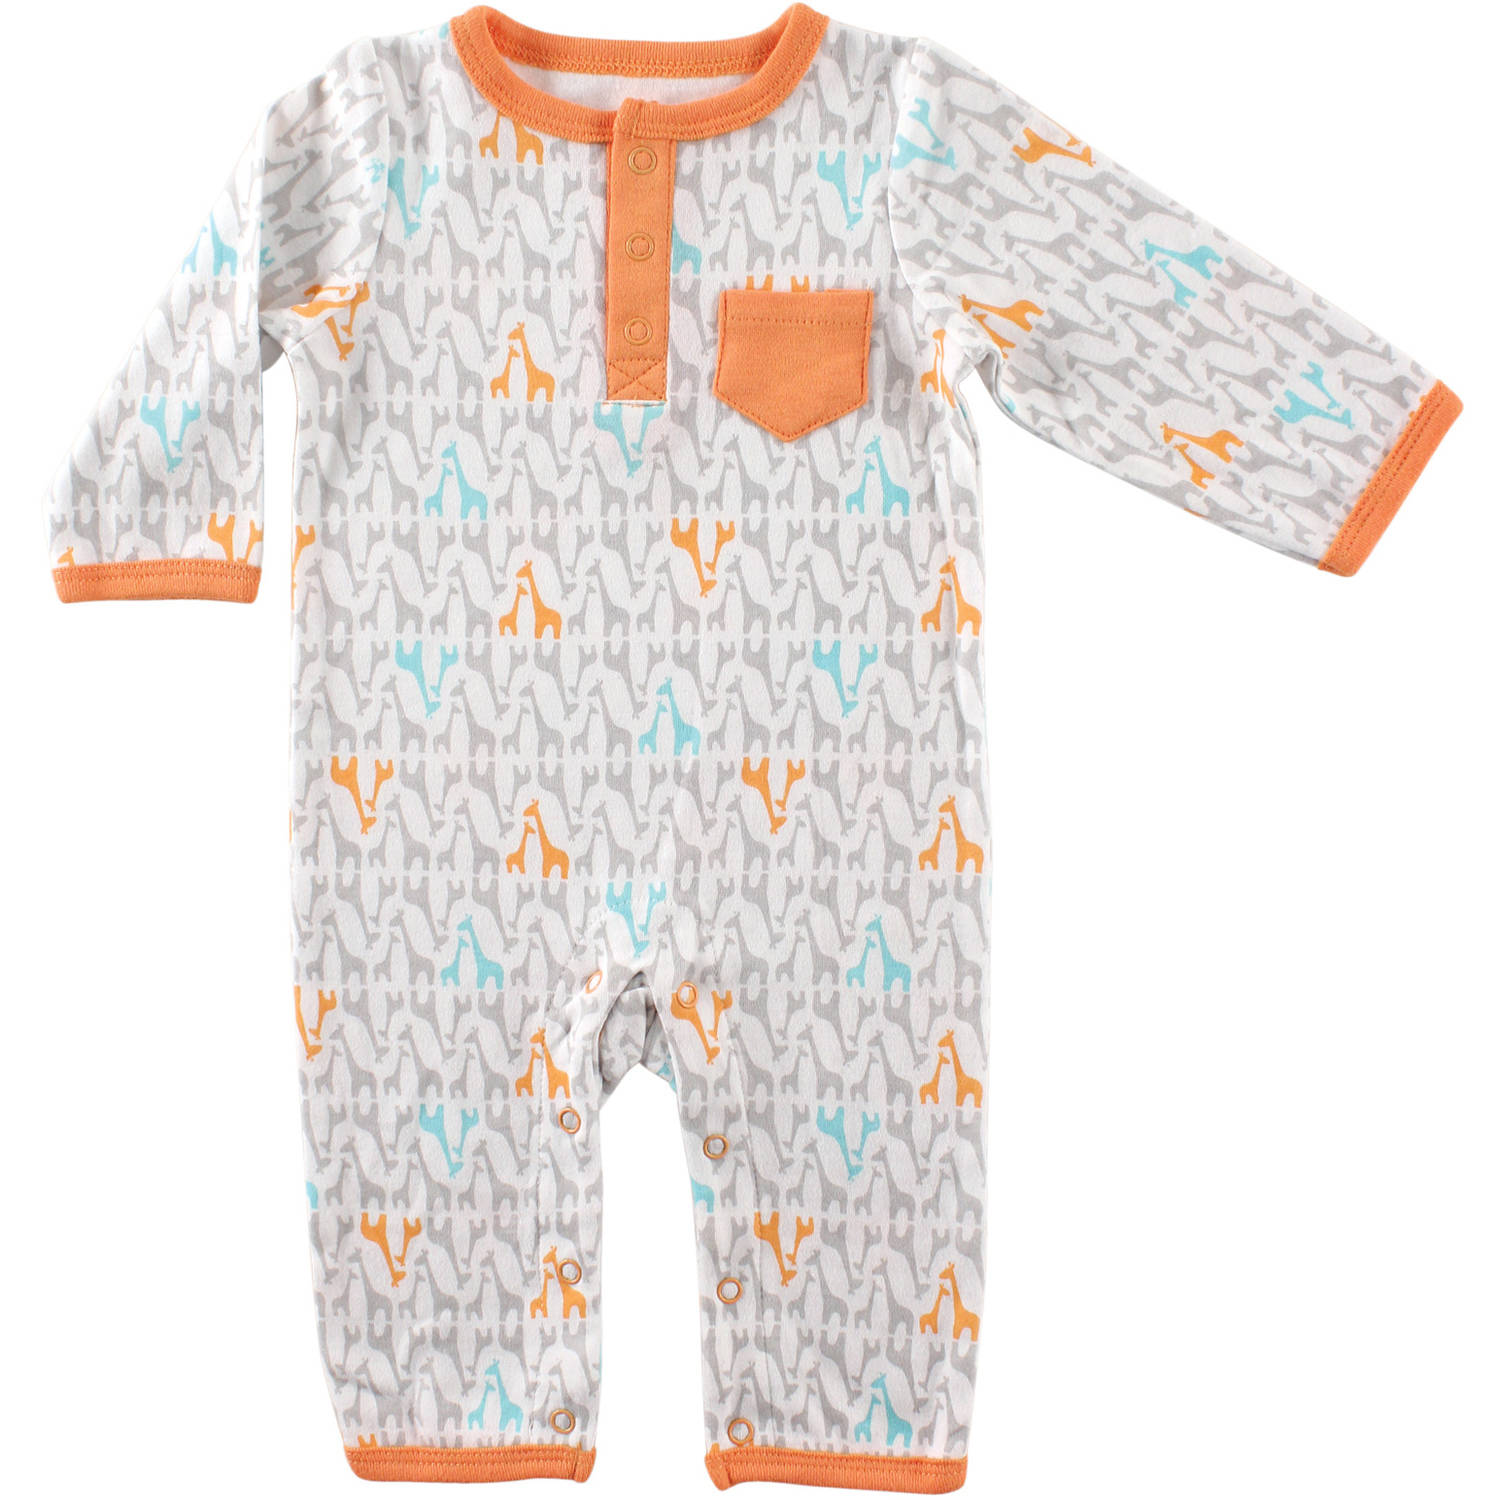 Yoga Sprout Newborn Baby Neutral Giraffe Union Suit